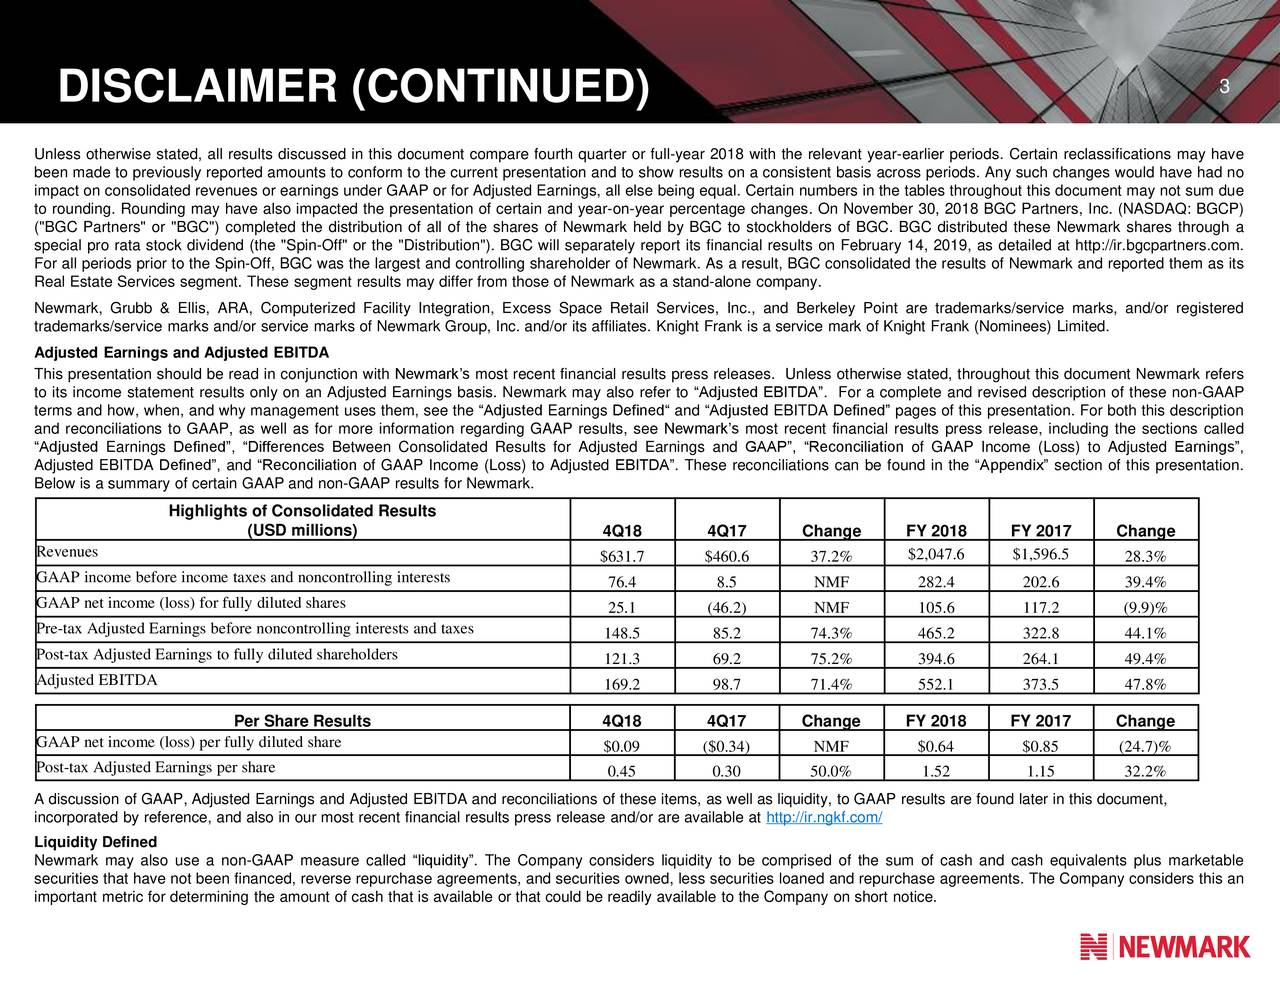 "DISCLAIMER (CONTINUED) Unless otherwise stated, all results discussed in this document compare fourth quarter or full-year 2018 with the relevant year-earlier periods. Certain reclassifications may have been made to previously reported amounts to conform to the current presentation and to show results on a consistent basis across periods. Any such changes would have had no impact on consolidated revenues or earnings under GAAP or for Adjusted Earnings, all else being equal. Certain numbers in the tables throughout this document may not sum due to rounding. Rounding may have also impacted the presentation of certain and year-on-year percentage changes. On November 30, 2018 BGC Partners, Inc. (NASDAQ: BGCP) (""BGC Partners"" or ""BGC"") completed the distribution of all of the shares of Newmark held by BGC to stockholders of BGC. BGC distributed these Newmark shares through a special pro rata stock dividend (the ""Spin-Off"" or the ""Distribution""). BGC will separately report its financial results on February 14, 2019, as detailed at http://ir.bgcpartners.com. For all periods prior to the Spin-Off, BGC was the largest and controlling shareholder of Newmark. As a result, BGC consolidated the results of Newmark and reported them as its Real Estate Services segment. These segment results may differ from those of Newmark as a stand-alone company. Newmark, Grubb & Ellis, ARA, Computerized Facility Integration, Excess Space Retail Services, Inc., and Berkeley Point are trademarks/service marks, and/or registered trademarks/service marks and/or service marks of Newmark Group, Inc. and/or its affiliates. Knight Frank is a service mark of Knight Frank (Nominees) Limited. Adjusted Earnings and Adjusted EBITDA This presentation should be read in conjunction with Newmark's most recent financial results press releases. Unless otherwise stated, throughout this document Newmark refers to its income statement results only on an Adjusted Earnings basis. Newmark may also refer to ""Adjusted EBITDA"". For a complete and revised description of these non-GAAP terms and how, when, and why management uses them, see the ""Adjusted Earnings Defined"" and ""Adjusted EBITDA Defined"" pages of this presentation. For both this description and reconciliations to GAAP, as well as for more information regarding GAAP results, see Newmark's most recent financial results press release, including the sections called ""Adjusted Earnings Defined"", ""Differences Between Consolidated Results for Adjusted Earnings and GAAP"", ""Reconciliation of GAAP Income (Loss) to Adjusted Earnings"", Adjusted EBITDA Defined"", and ""Reconciliation of GAAP Income (Loss) to Adjusted EBITDA"". These reconciliations can be found in the ""Appendix"" section of this presentation. Below is a summary of certain GAAP and non-GAAP results for Newmark. Highlights of Consolidated Results (USD millions) 4Q18 4Q17 Change FY 2018 FY 2017 Change Revenues $631.7 $460.6 37.2% $2,047.6 $1,596.5 28.3% GAAP income before income taxes and noncontrolling interests 76.4 8.5 NMF 282.4 202.6 39.4% GAAP net income (loss) for fully diluted shares 25.1 (46.2) NMF 105.6 117.2 (9.9)% Pre-tax Adjusted Earnings before noncontrolling interests and taxes 148.5 85.2 74.3% 465.2 322.8 44.1% Post-tax Adjusted Earnings to fully diluted shareholders 121.3 69.2 75.2% 394.6 264.1 49.4% Adjusted EBITDA 169.2 98.7 71.4% 552.1 373.5 47.8% Per Share Results 4Q18 4Q17 Change FY 2018 FY 2017 Change GAAP net income (loss) per fully diluted share $0.09 ($0.34) NMF $0.64 $0.85 (24.7)% Post-tax Adjusted Earnings per share 0.45 0.30 50.0% 1.52 1.15 32.2% A discussion of GAAP, Adjusted Earnings and Adjusted EBITDA and reconciliations of these items, as well as liquidity, to GAAP results are found later in this document, incorporated by reference, and also in our most recent financial results press release and/or are available at http://ir.ngkf.com/ Liquidity Defined Newmark may also use a non-GAAP measure called ""liquidity"". The Company considers liquidity to be comprised of the sum of cash and cash equivalents plus marketable securities that have not been financed, reverse repurchase agreements, and securities owned, less securities loaned and repurchase agreements. The Company considers this an important metric for determining the amount of cash that is available or that could be readily available to the Company on short notice."